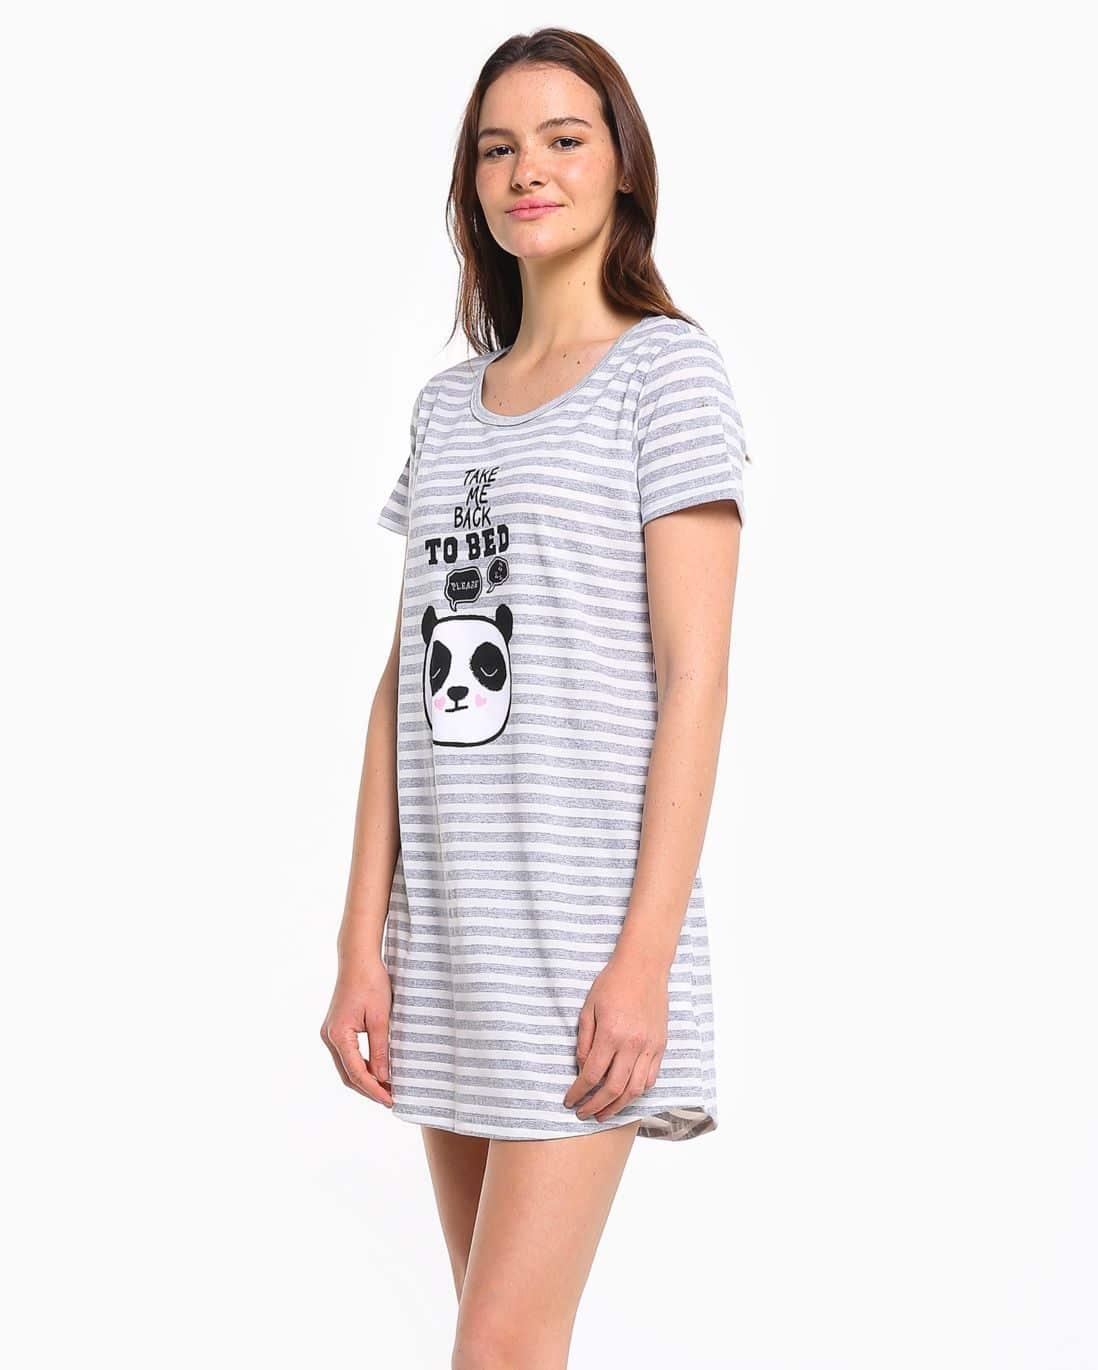 Camisola Malha Take Me Back To Bed Lilly - Branco/Cinza